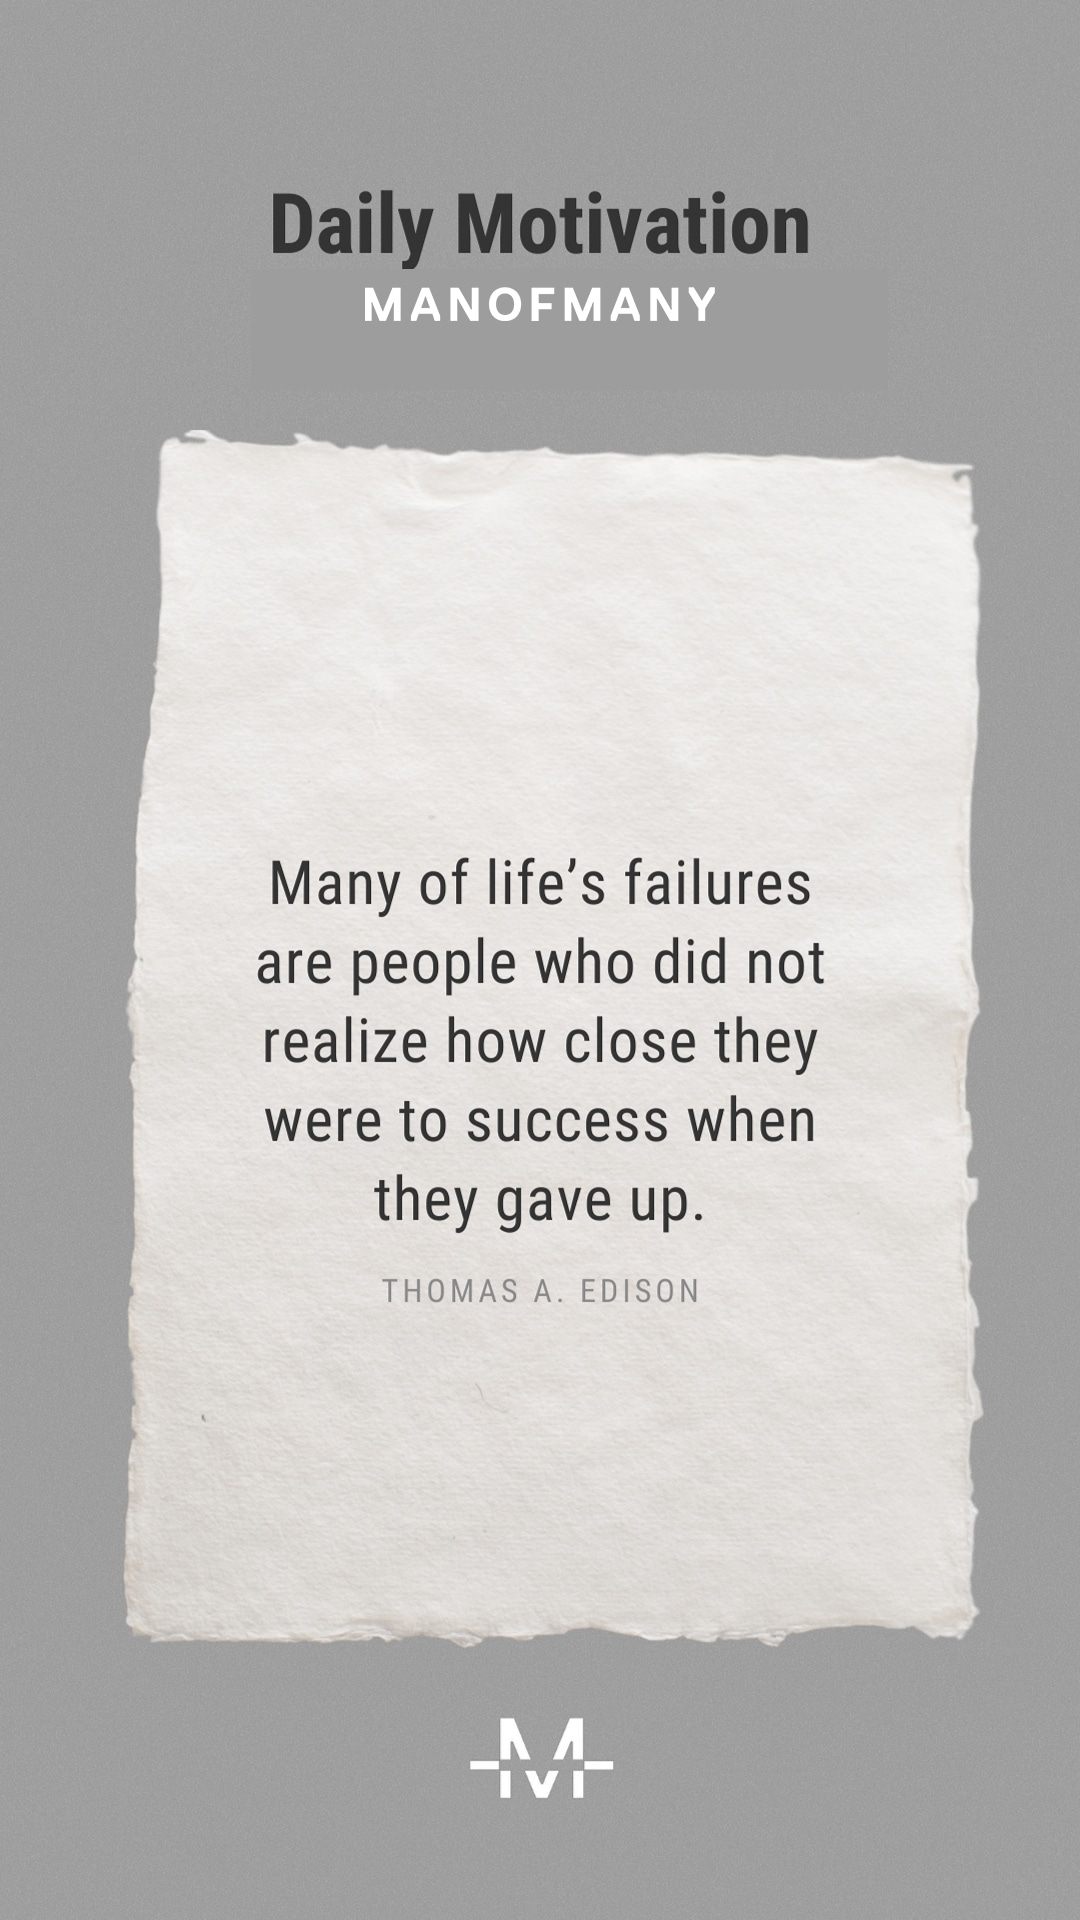 Many of life's failures are people who did not realize how close they were to success when they gave up.– Thomas A. Edison quote